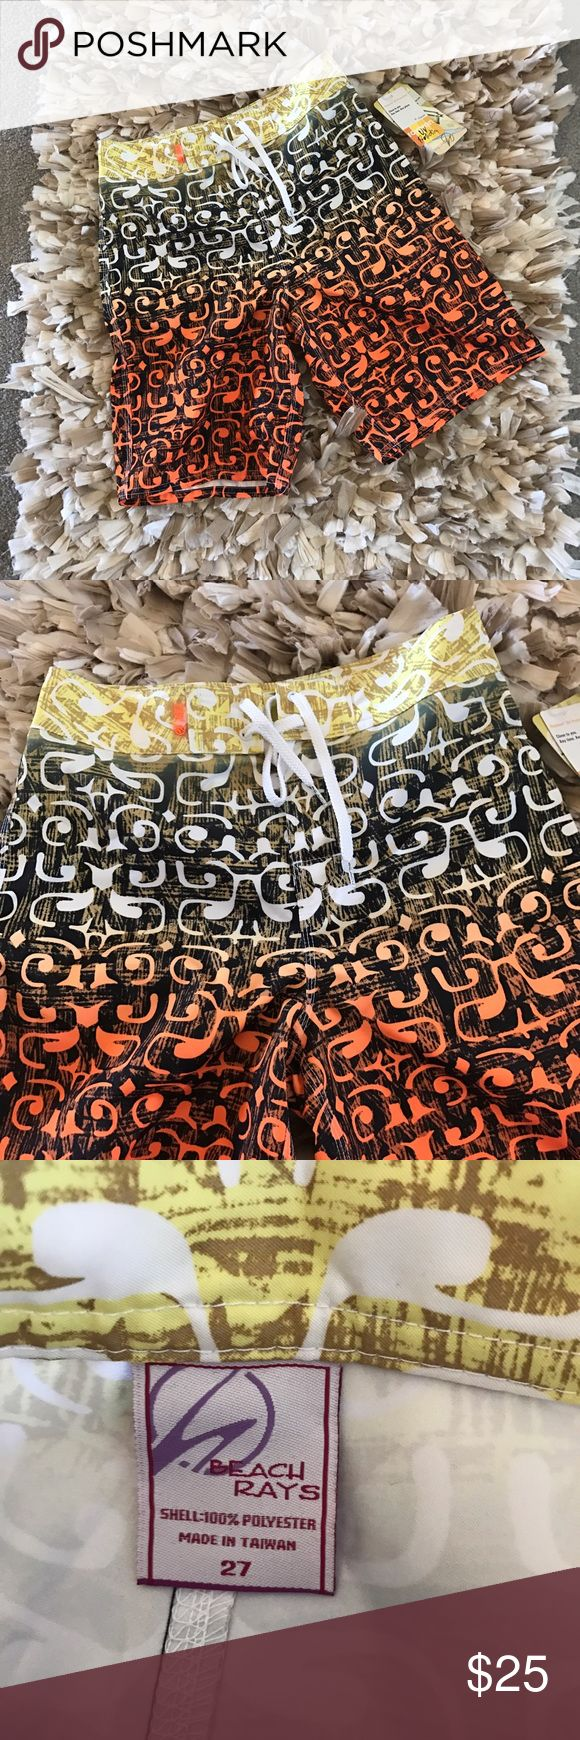 Rayo Sun Beach rays guys board shorts Rayo Sun Beach rays guys board shorts size 27 waist. New with tags. Features drawstring and Velcro front and back side pocket.  UV protection line,  Measurements: Waist to bottom 19.5 in. Inseam 10 in. Thigh measurement 22in. Swim Board Shorts